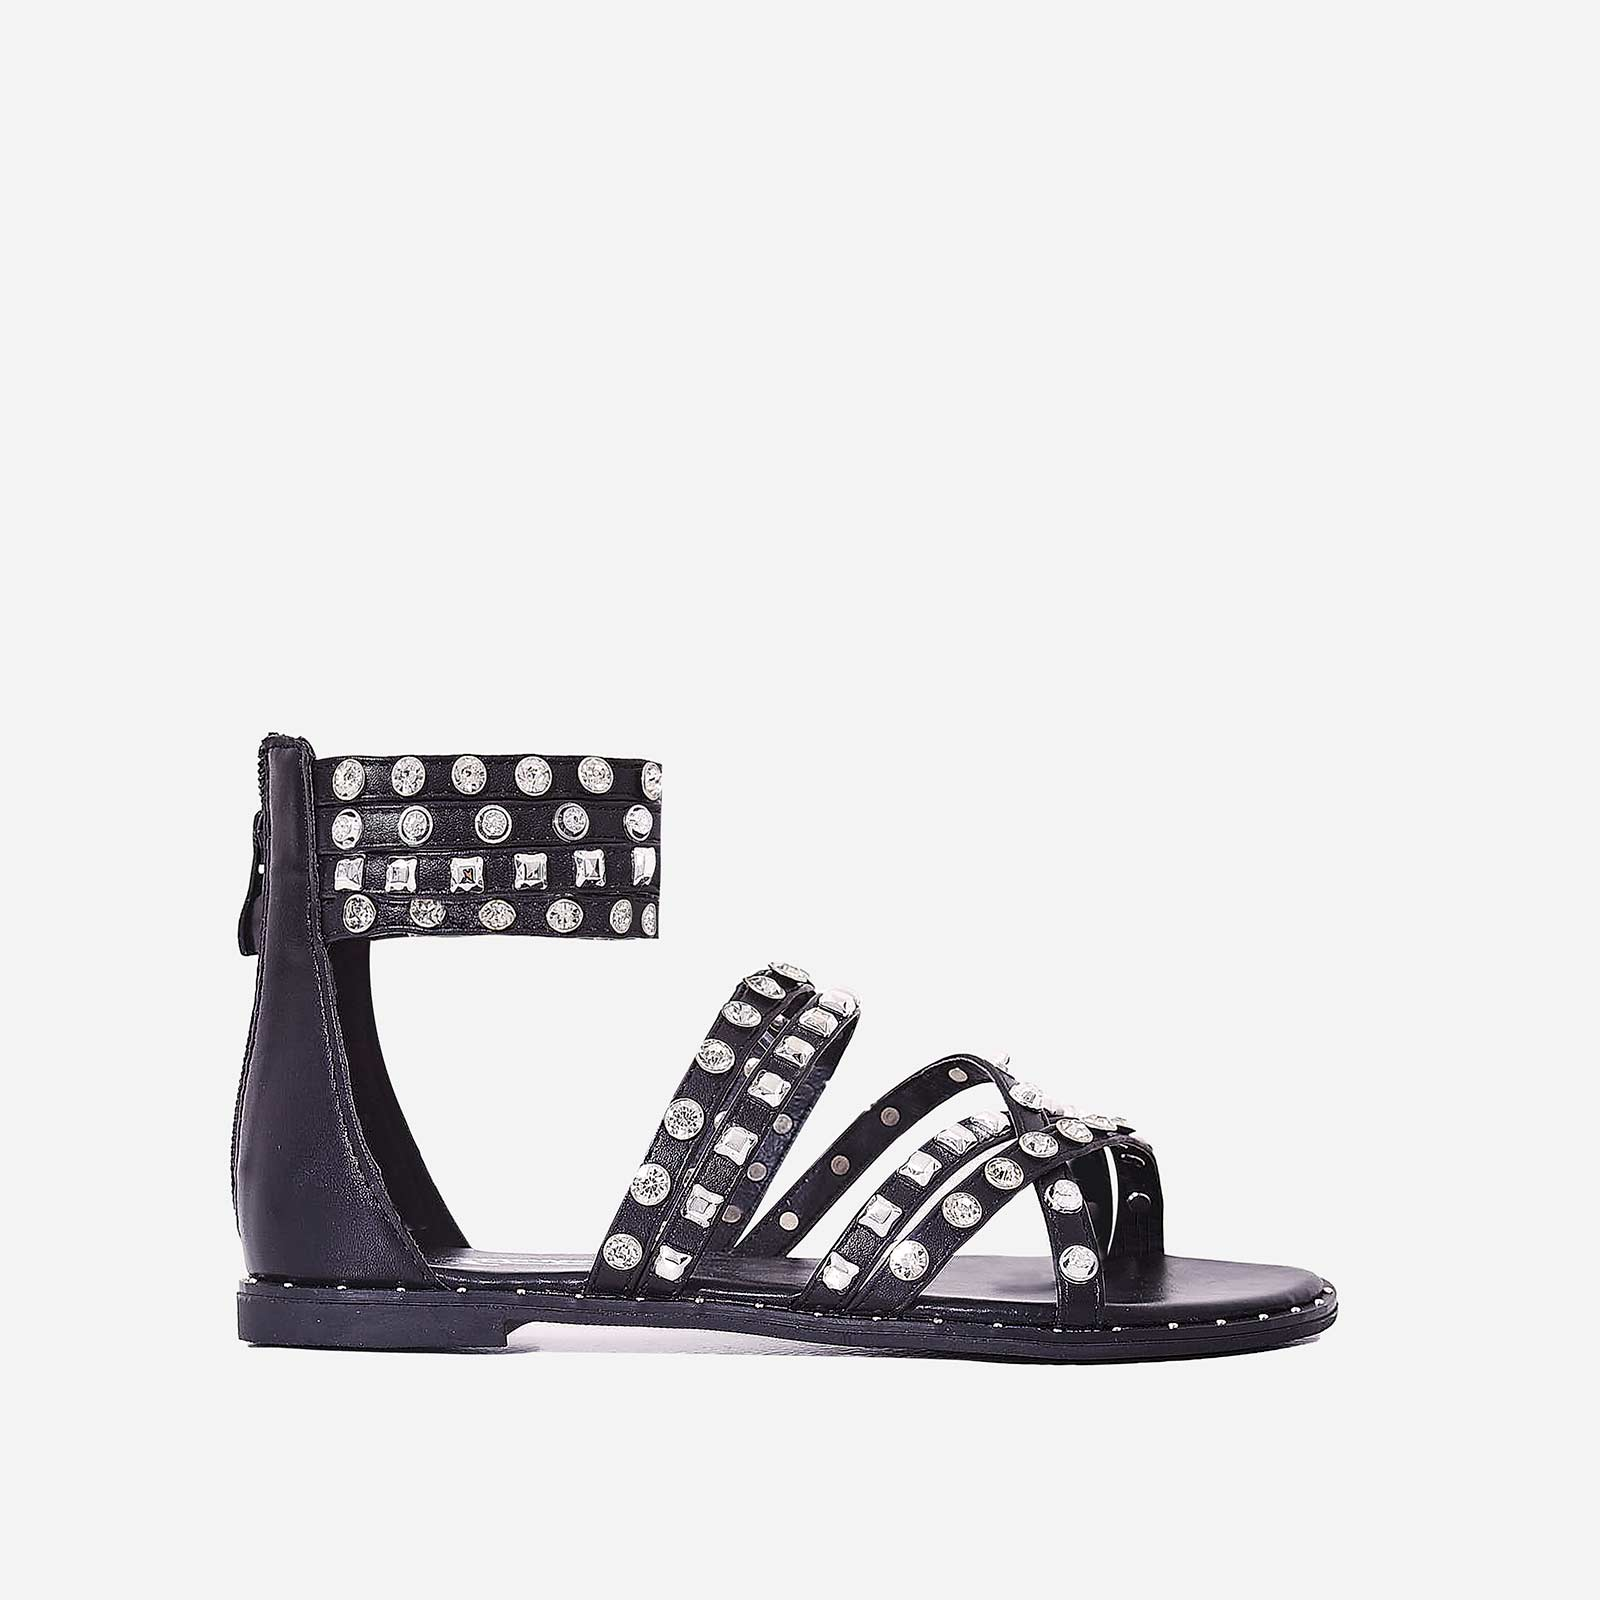 Zephyr Crystal Studded Gladiator Sandal In Black Faux Leather